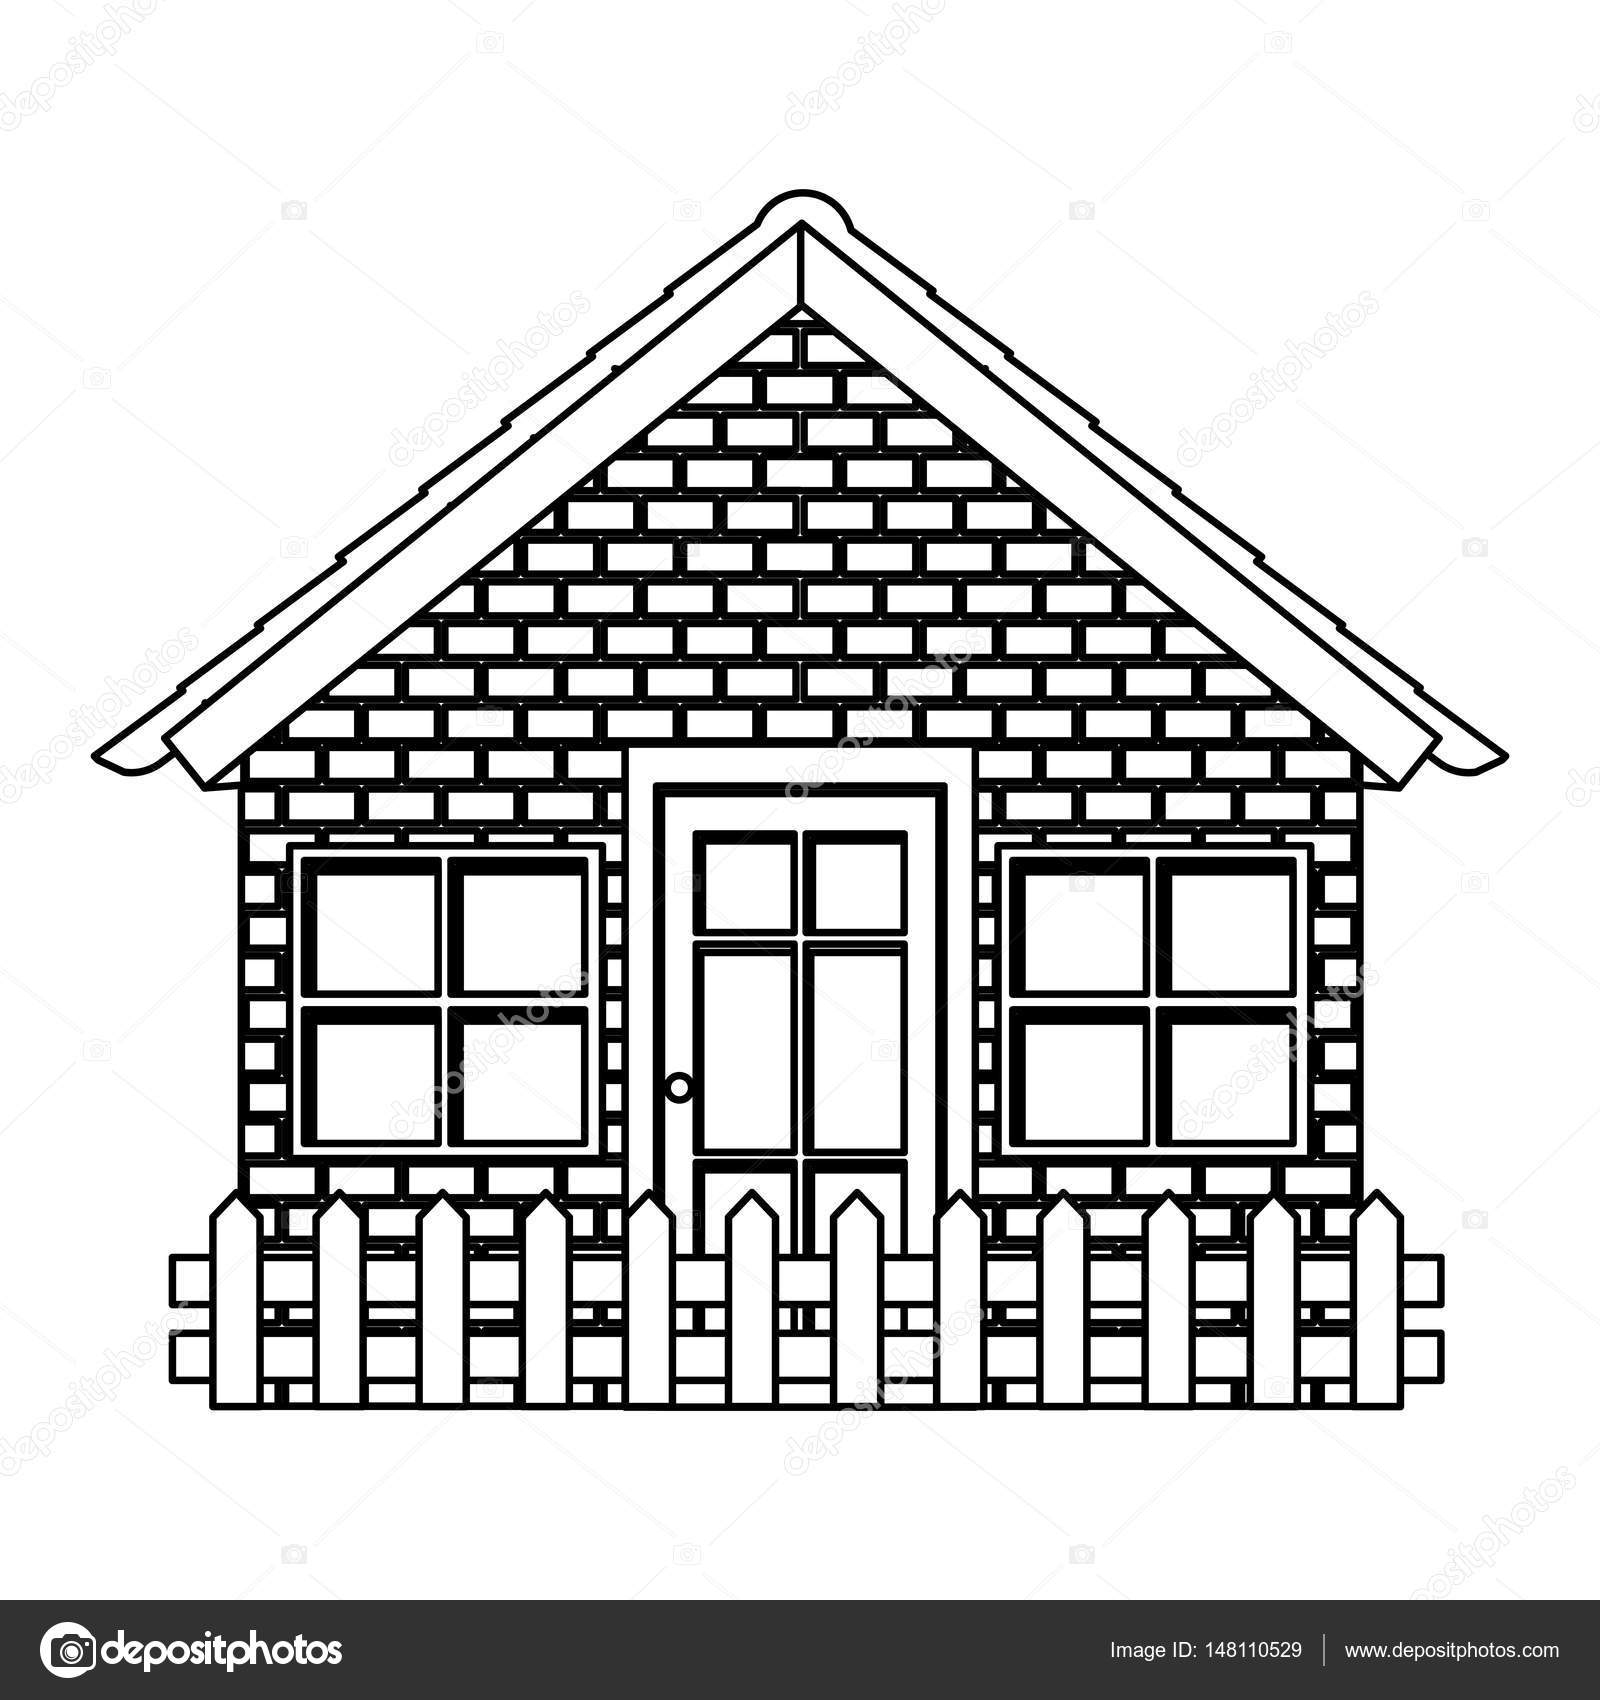 Silhouette Comfortable Facade House With Brick Wall And